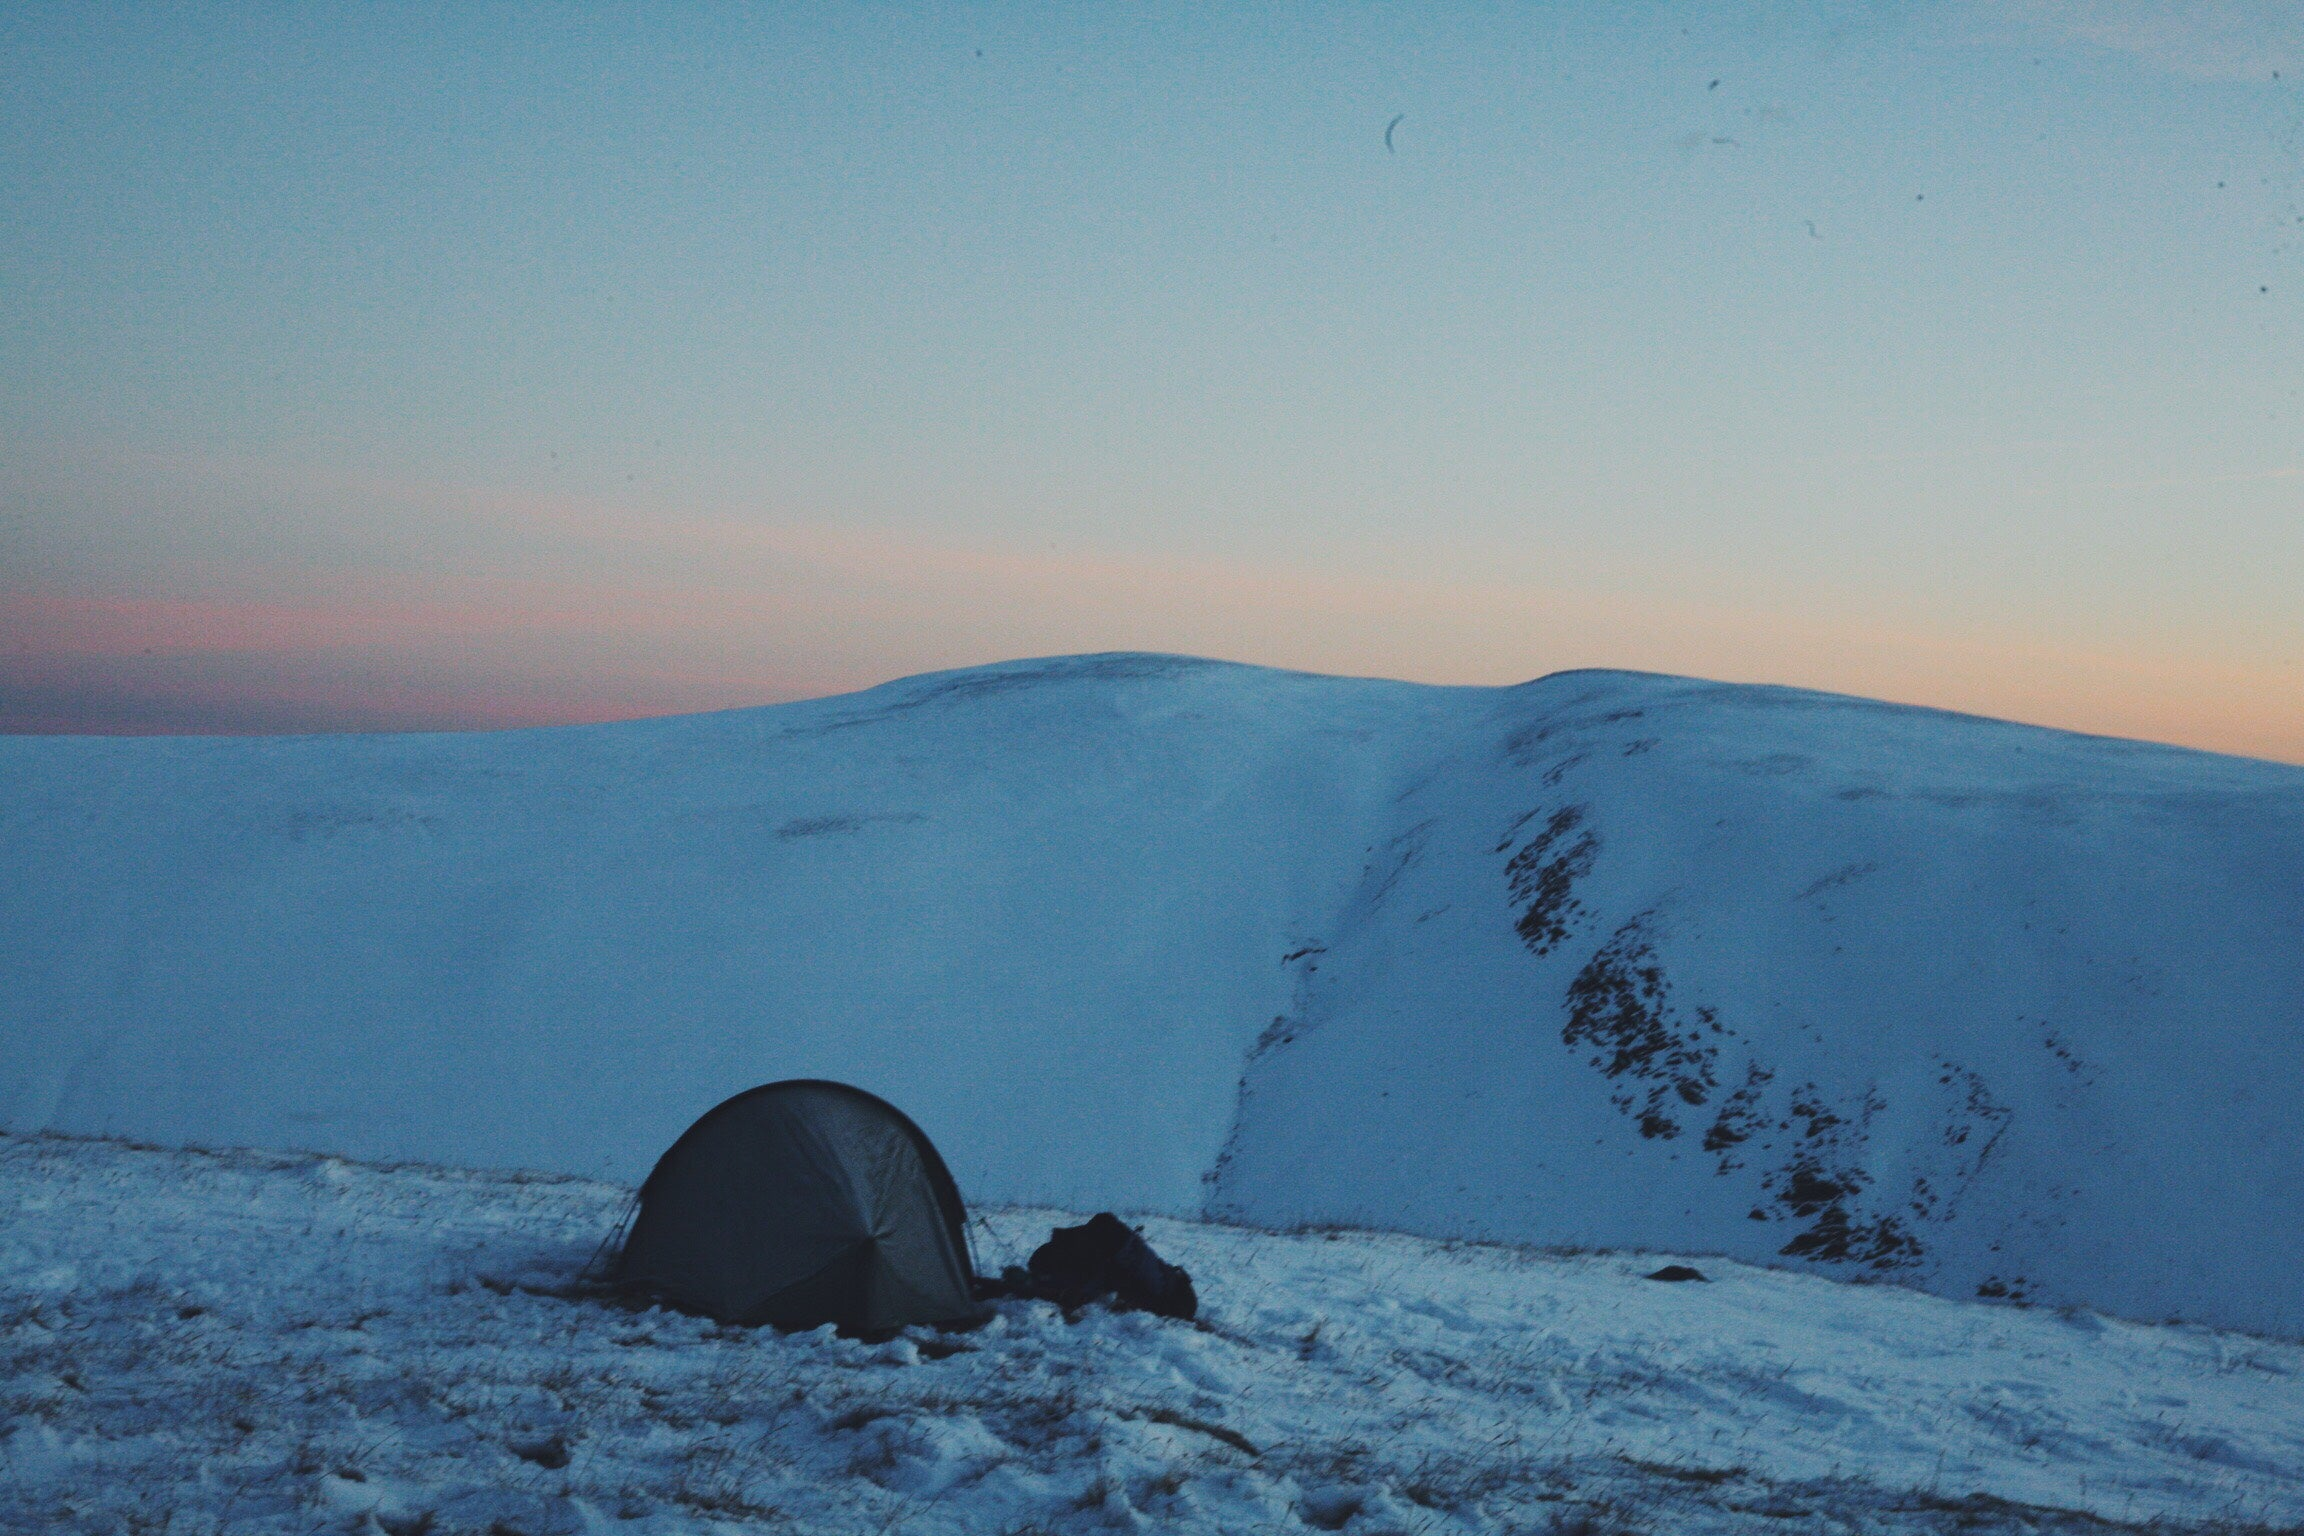 Image for article Adventures before work - A Winter Wildcamp